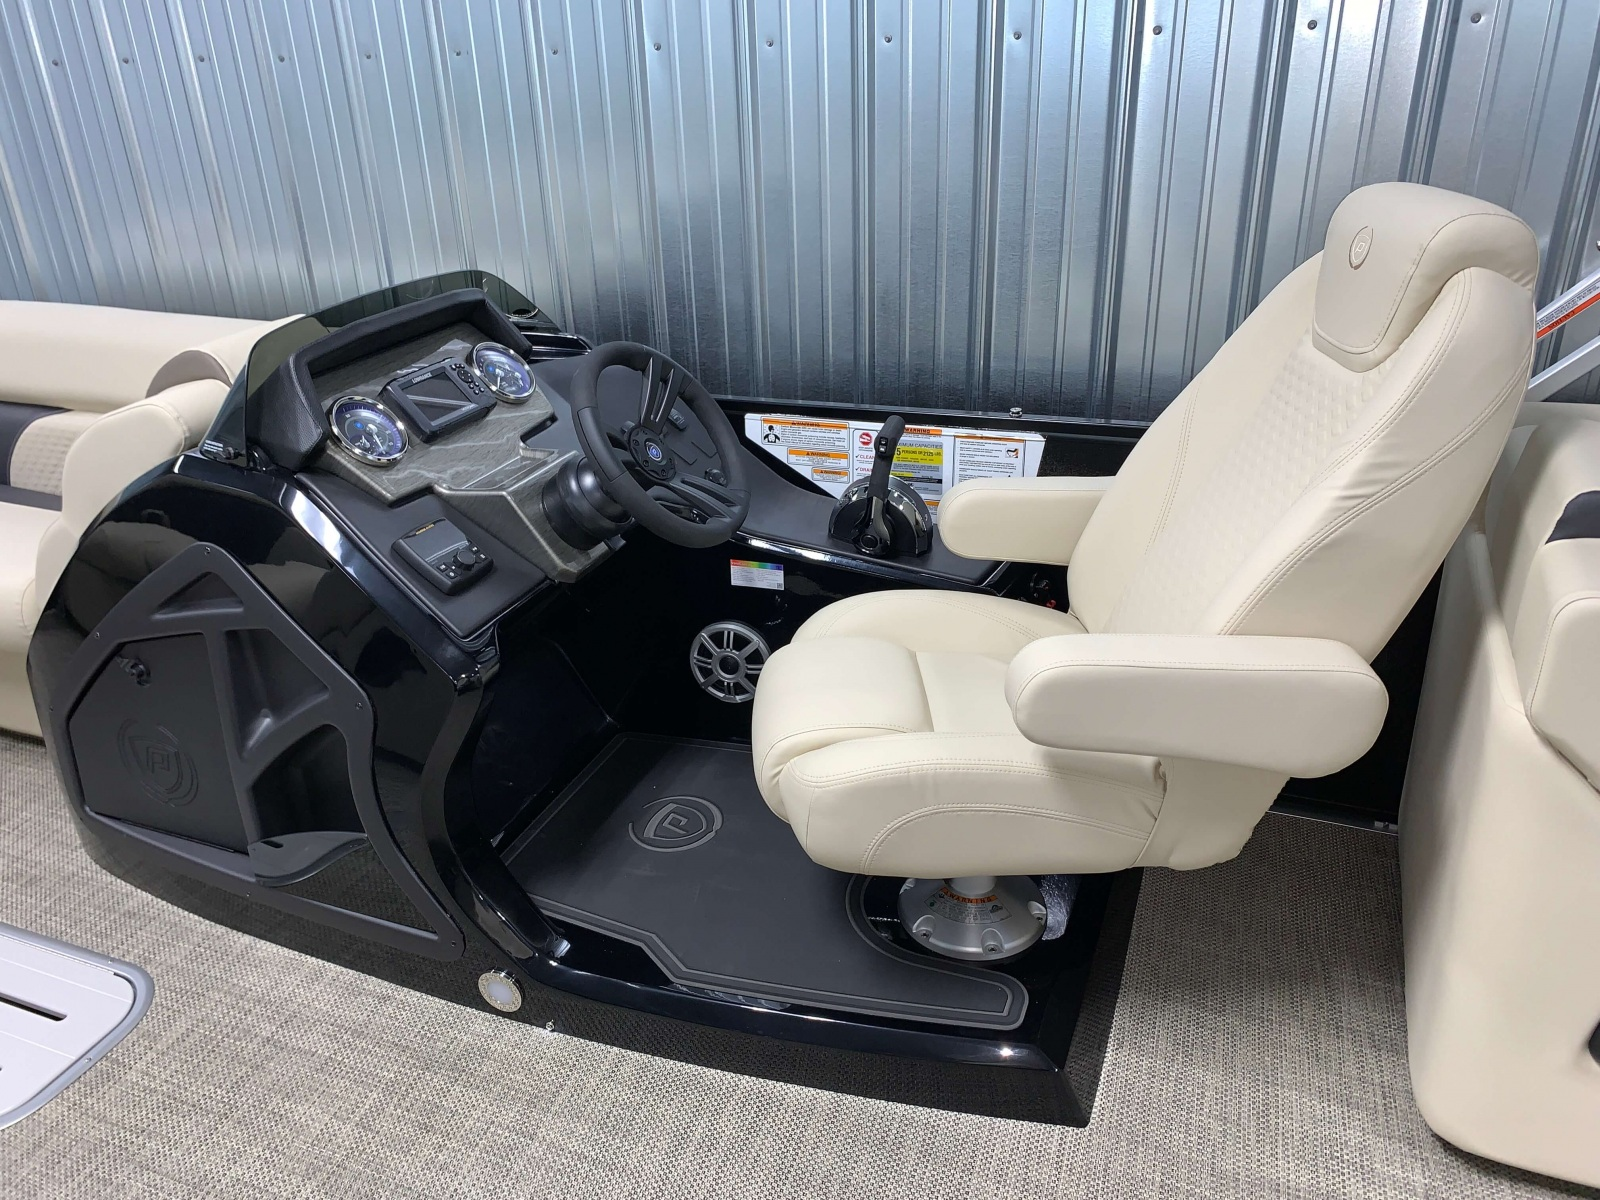 Signature Helm of the 2021 Premier 230 Sunsation RF Tritoon Boat